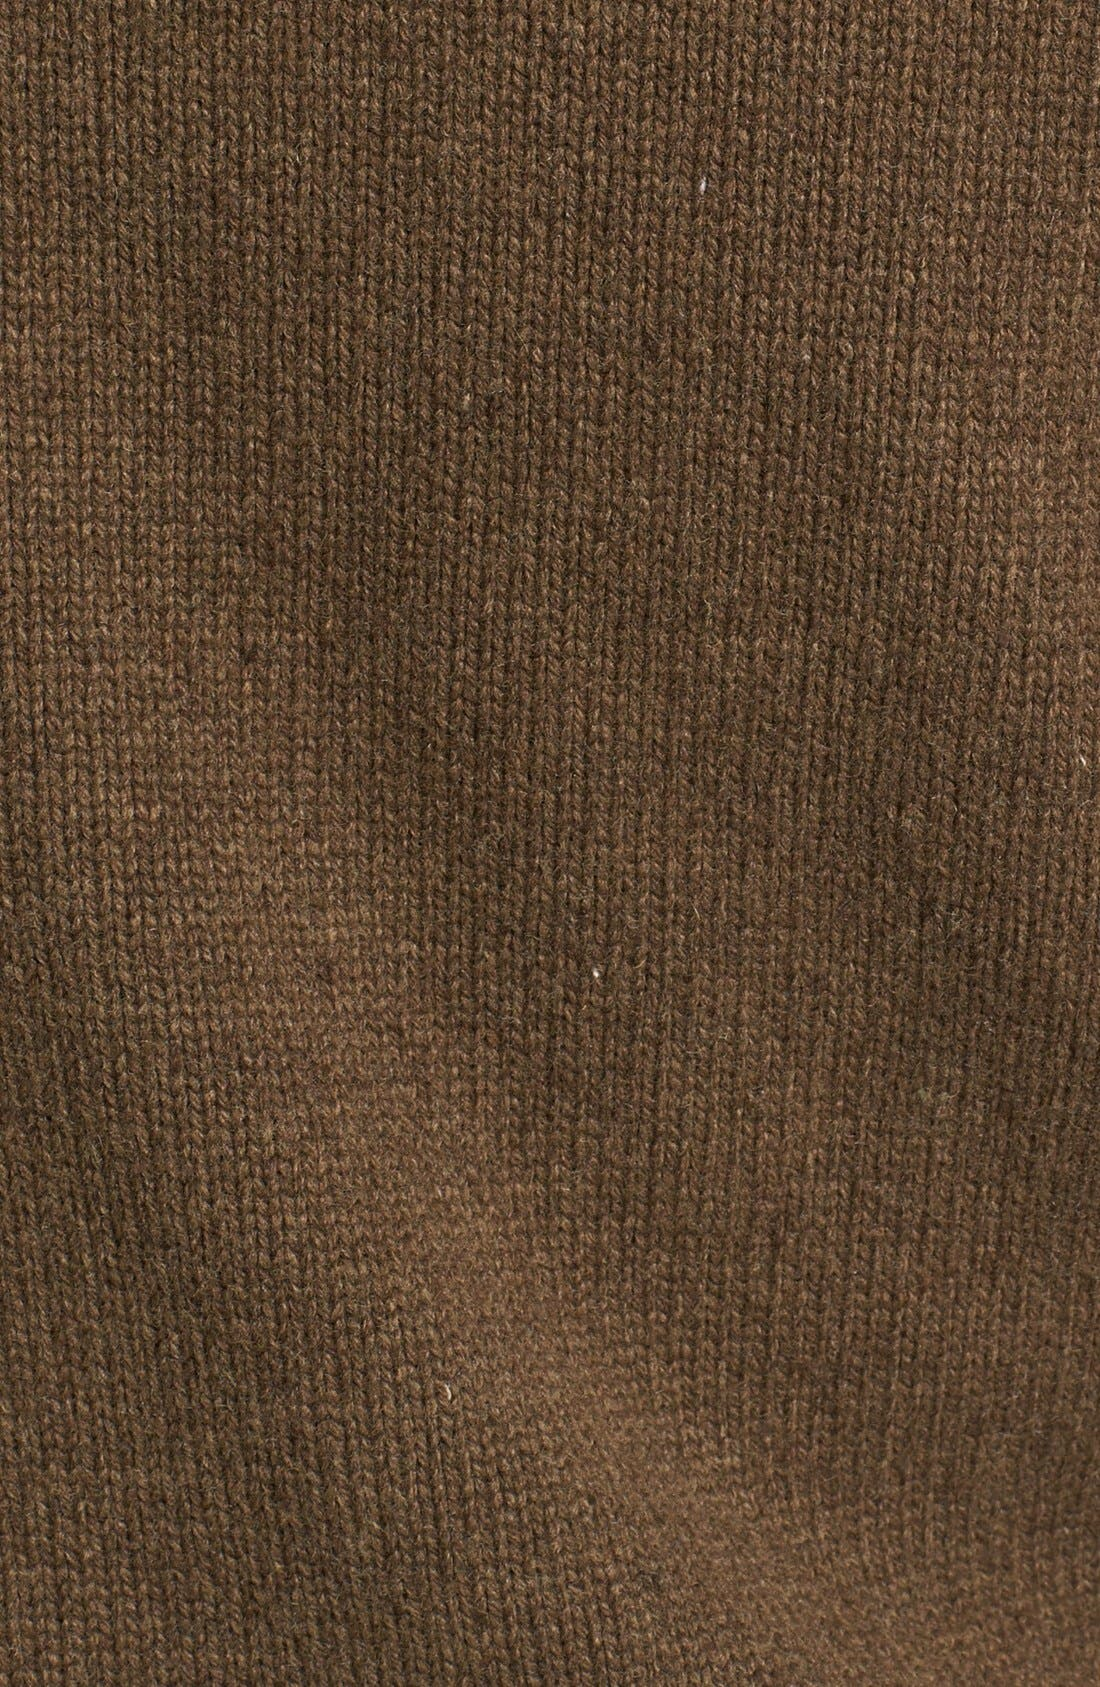 'Infantry' Wool Blend Sweater,                             Alternate thumbnail 2, color,                             341